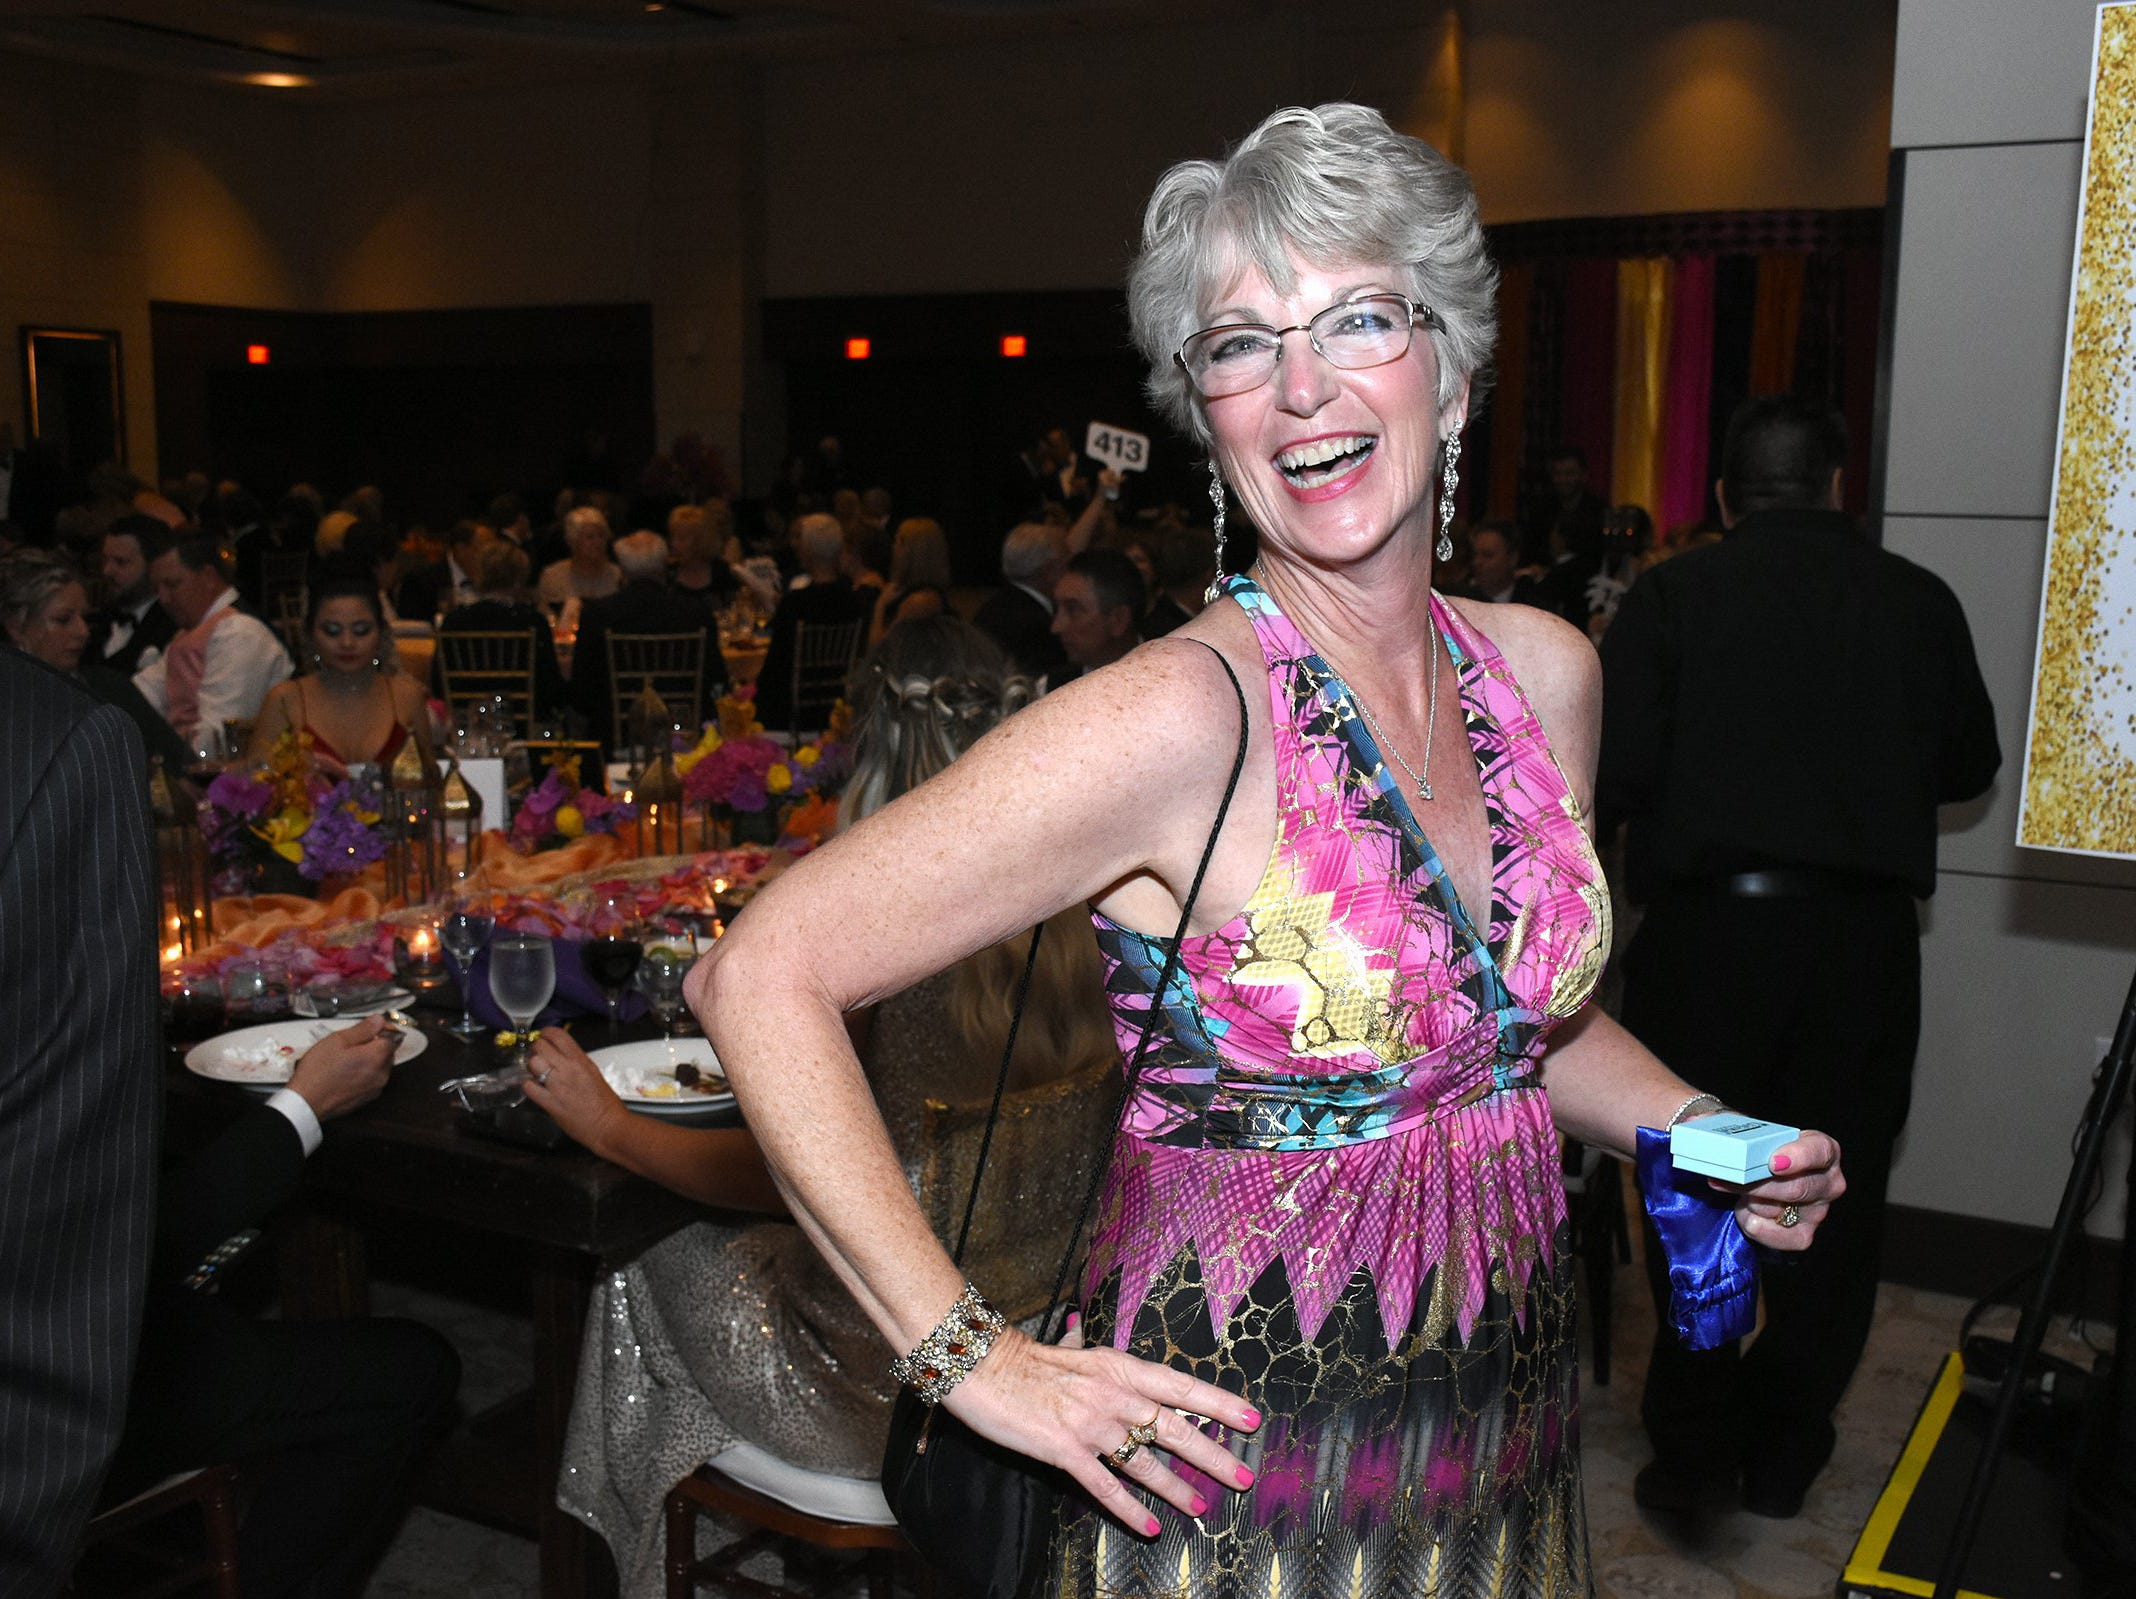 Volunteer Maureen Chodaba as she won the two carat diamond earrings from Kathein Jewelers of Marco. The Marco Island unit of the American Cancer Society held the Imagination Ball Friday evening at the JW Marriott hotel, raising funds to continue the fight against cancer.